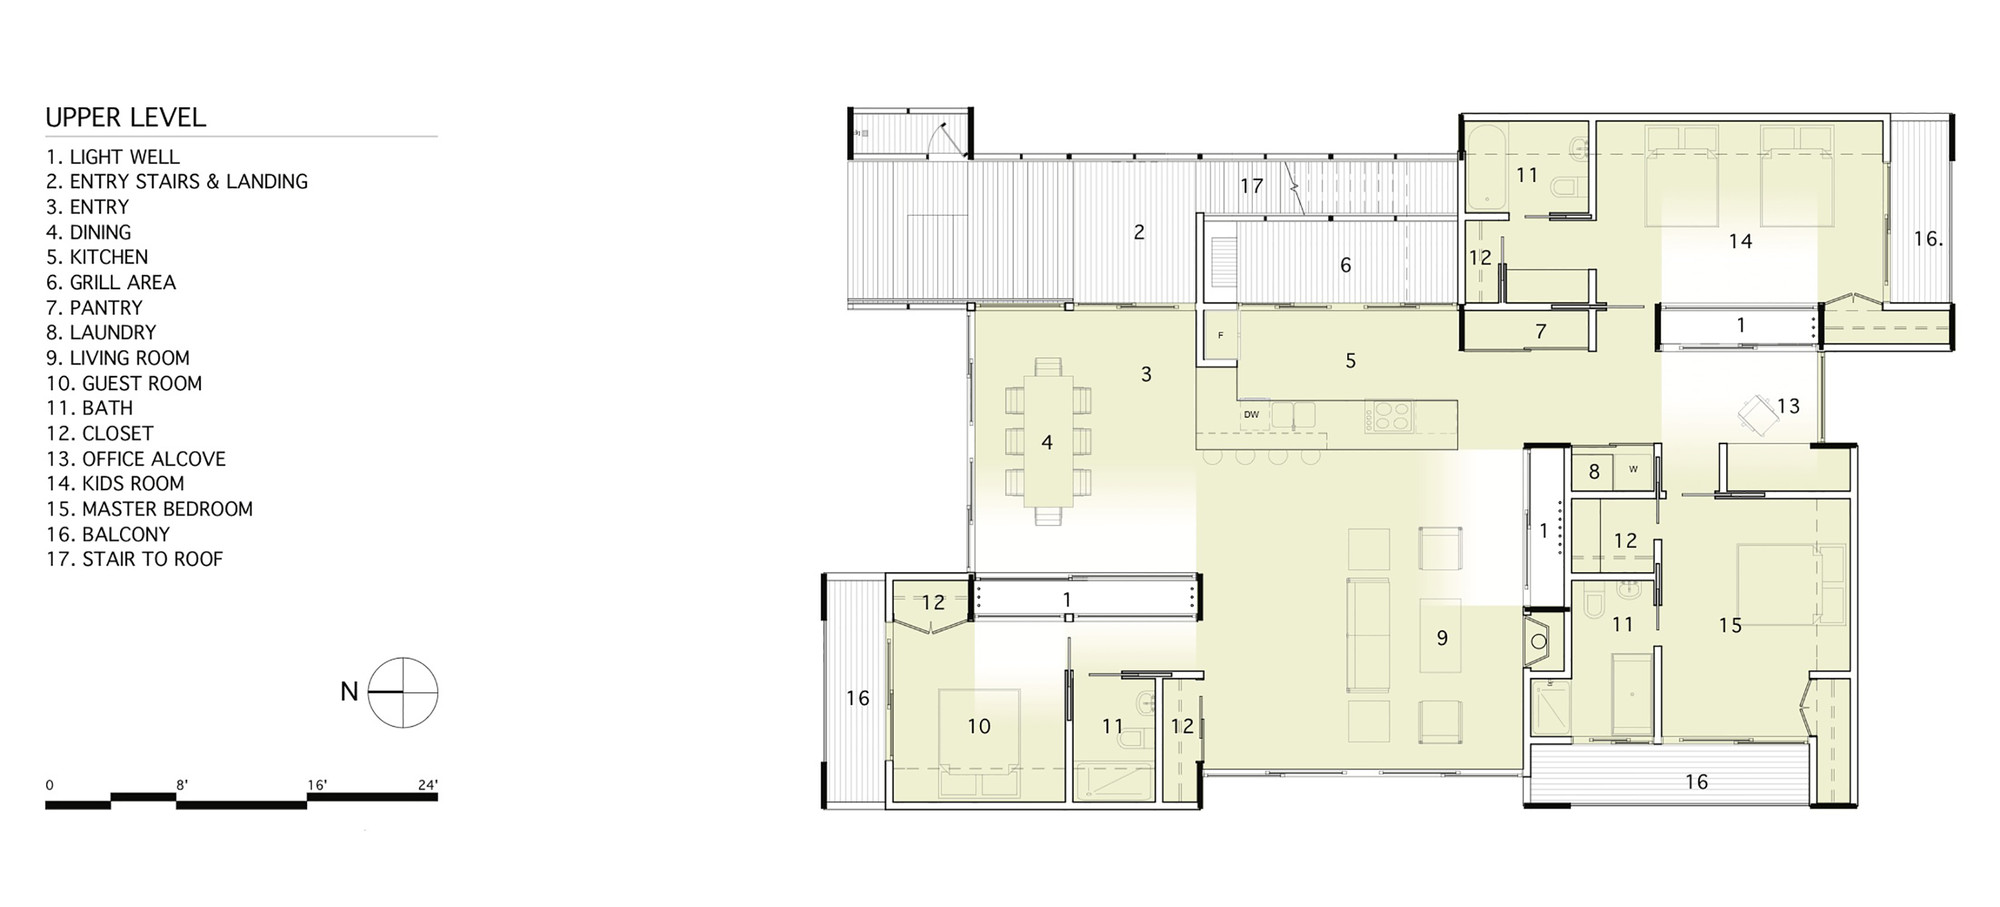 m2 _upper_floor_plan.jpg